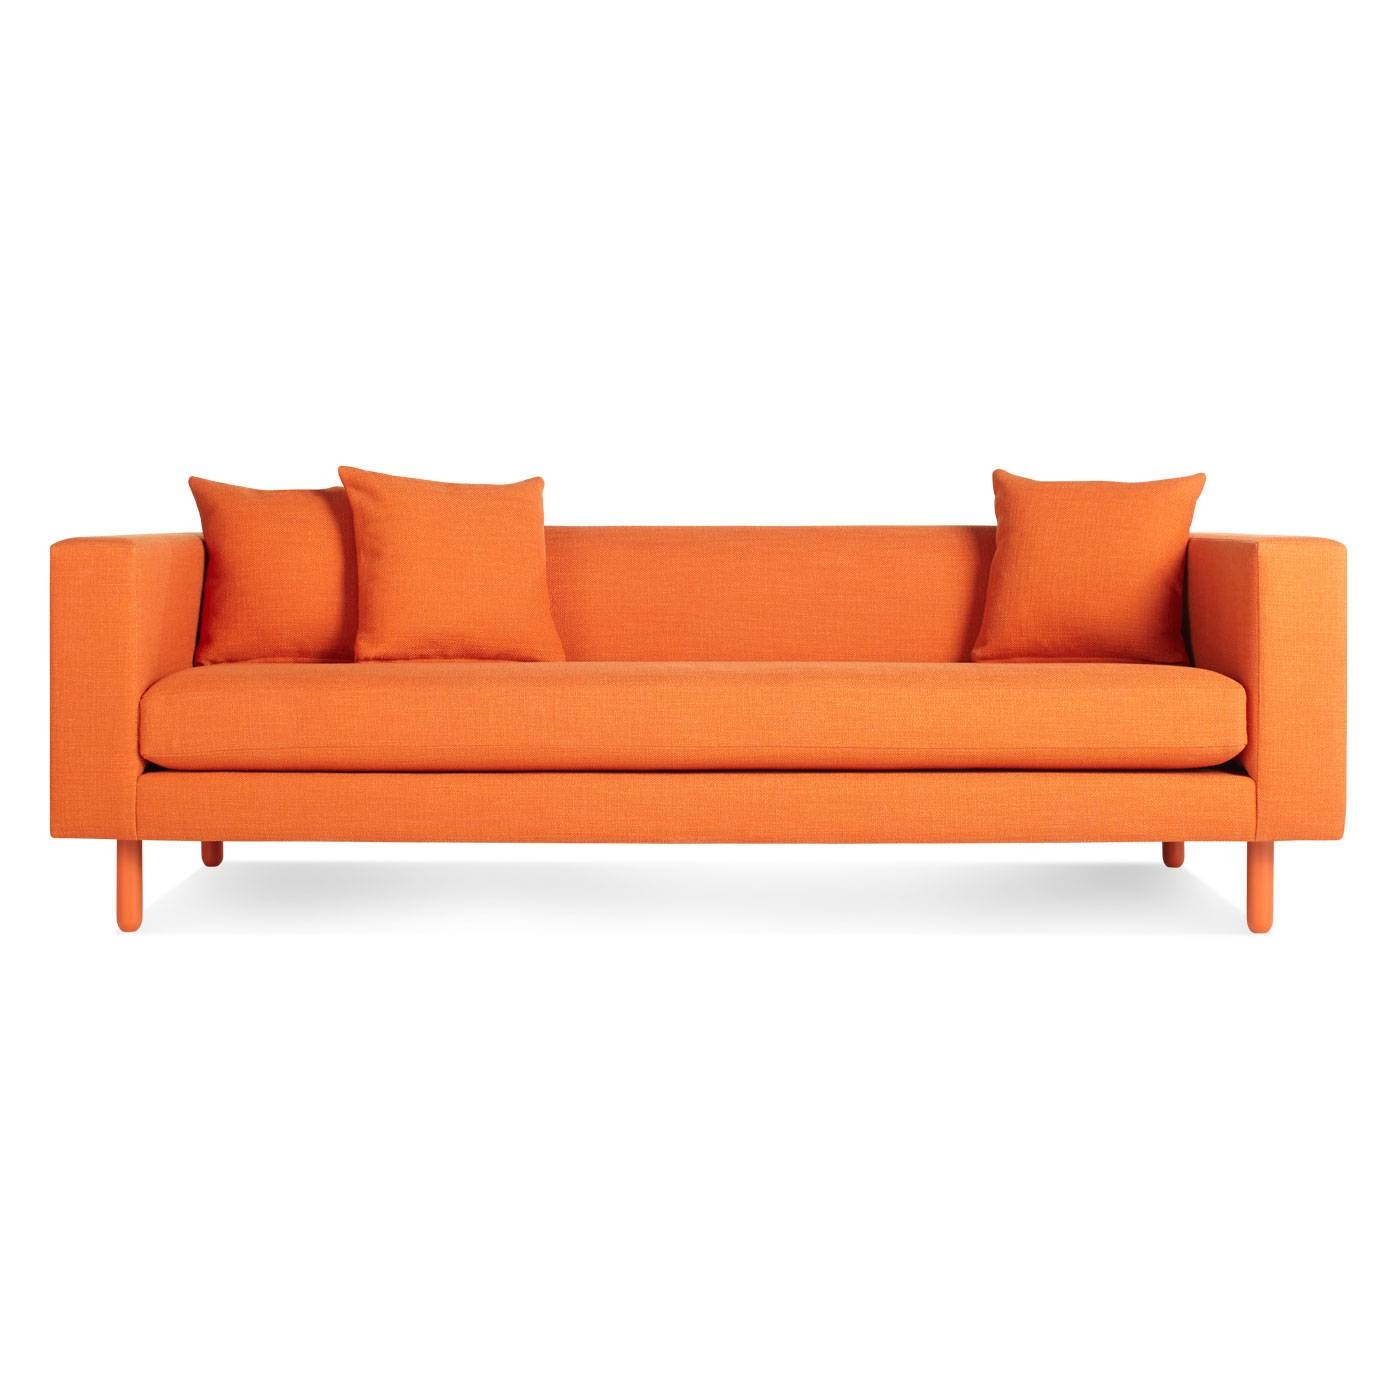 Good Orange Sofa 18 For Your Living Room Sofa Ideas With Orange Sofa pertaining to Orange Modern Sofas (Image 8 of 15)